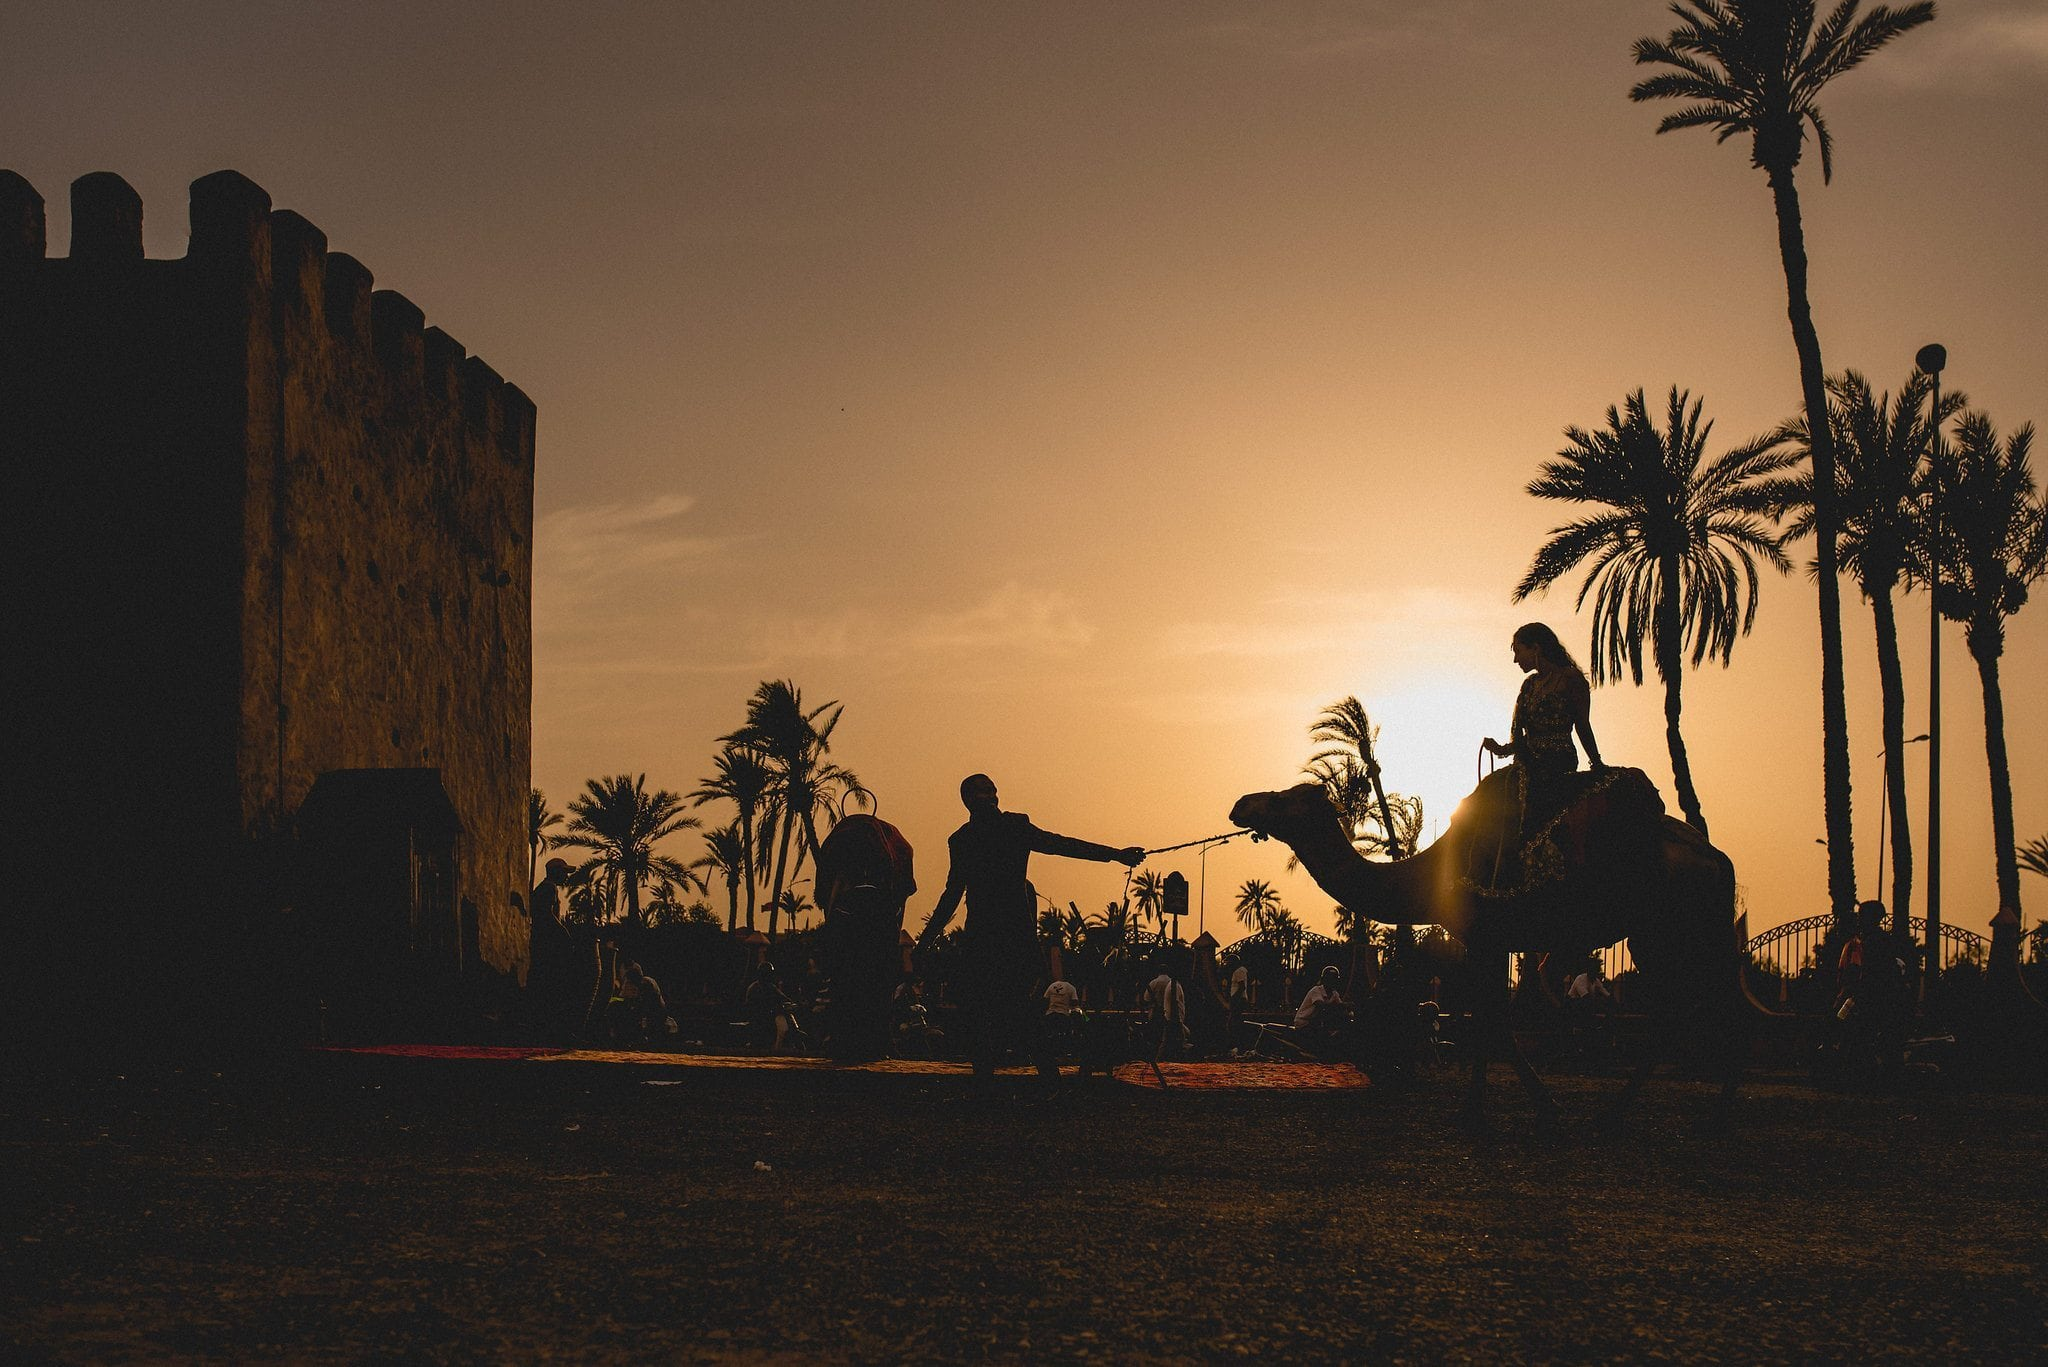 Indian groom leads his bride on a camel across the square in Marrakech. The couple are silhouetted against the setting sun.